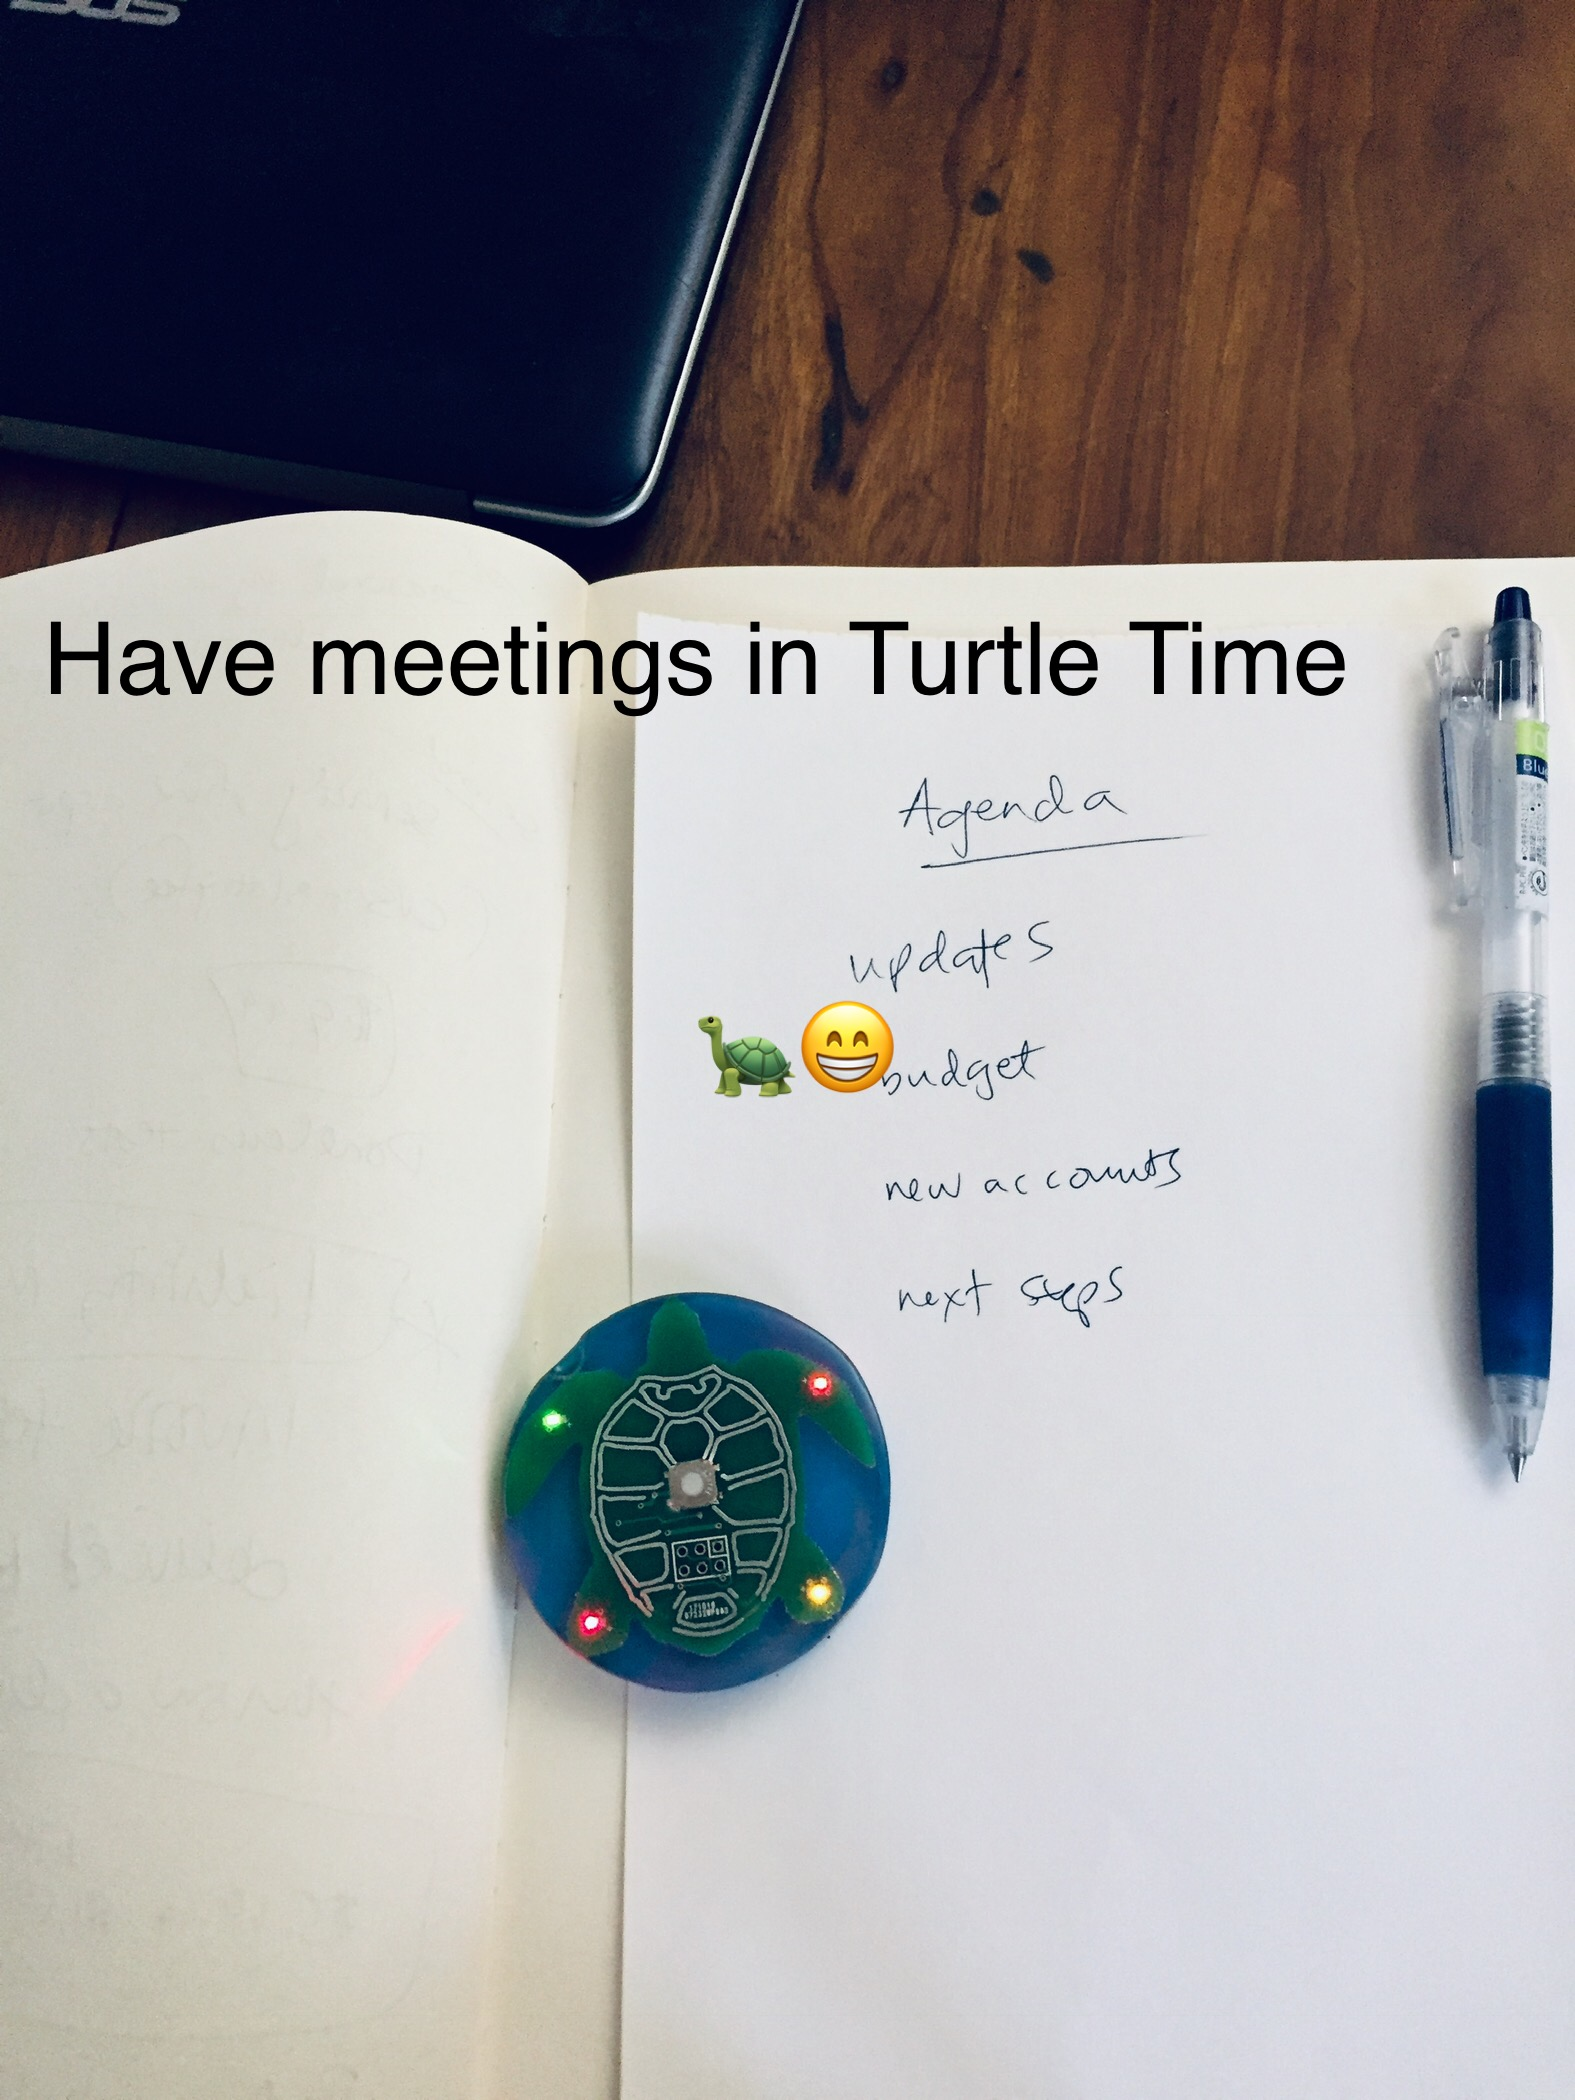 This Product (the Two Minute Turtle Timer) is Genius! - A Rau, Amazon Shopper